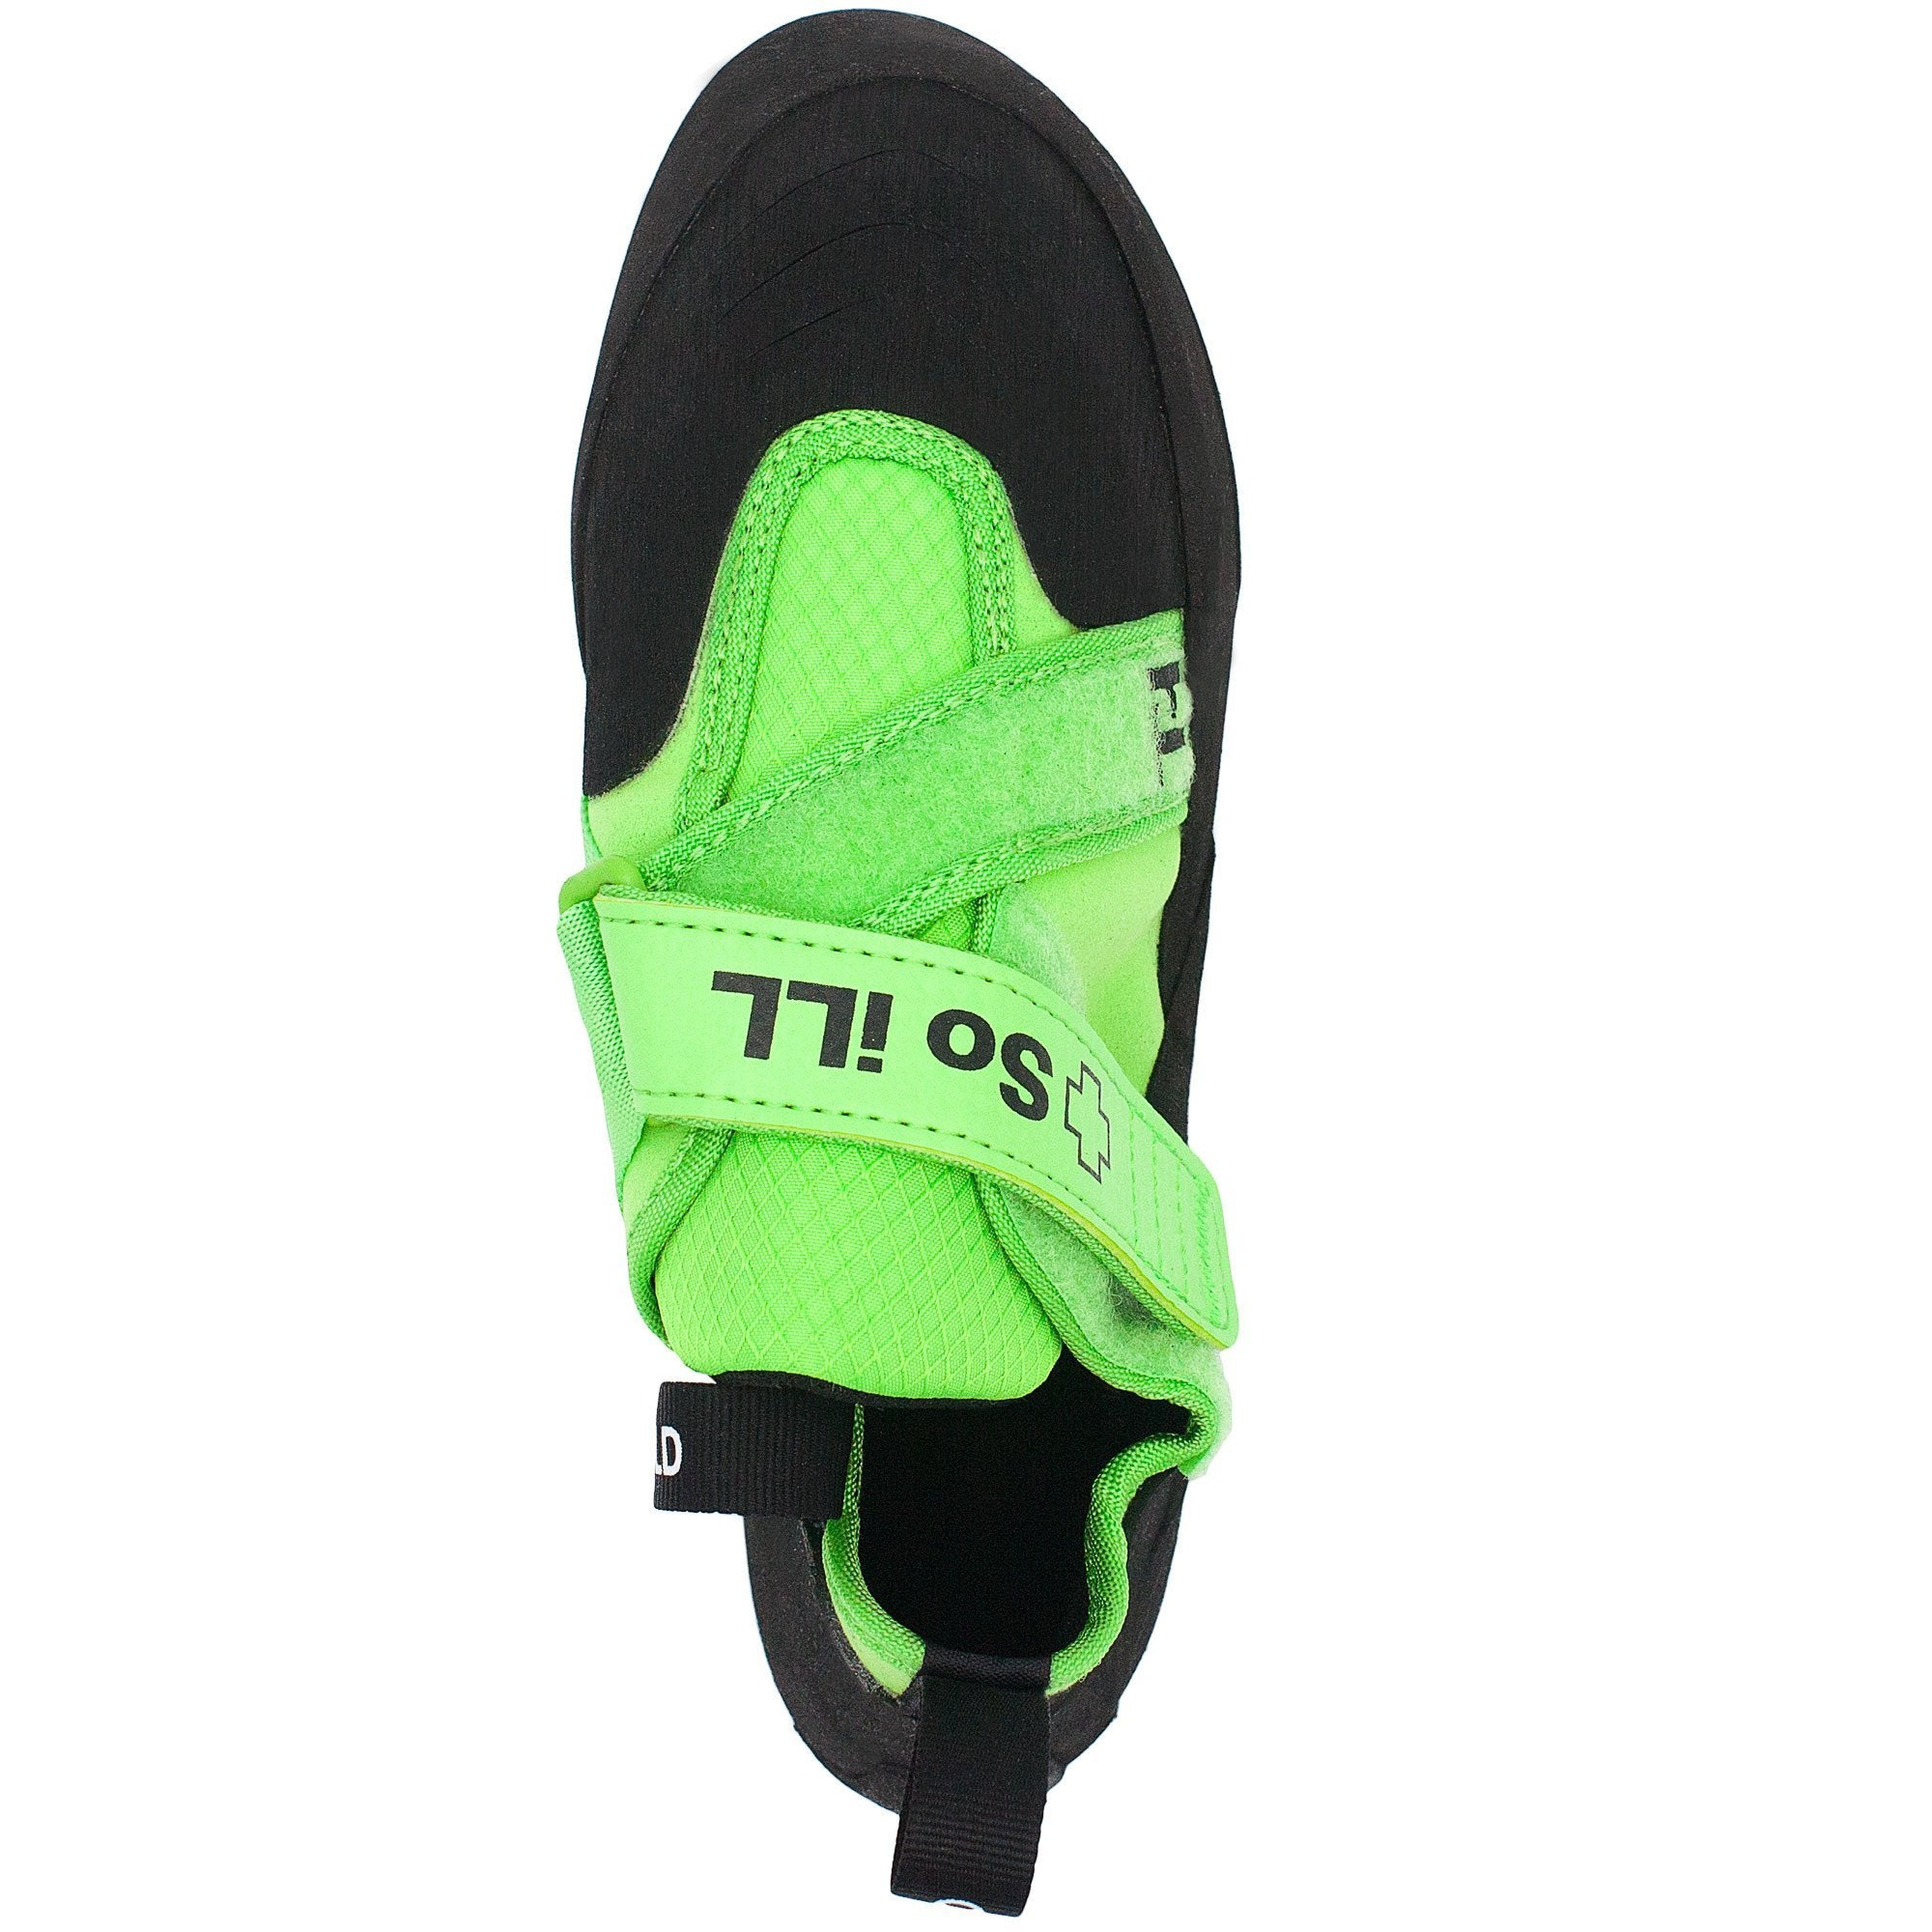 So iLL The Free Range Rock Climbing Shoe in Green – Top View